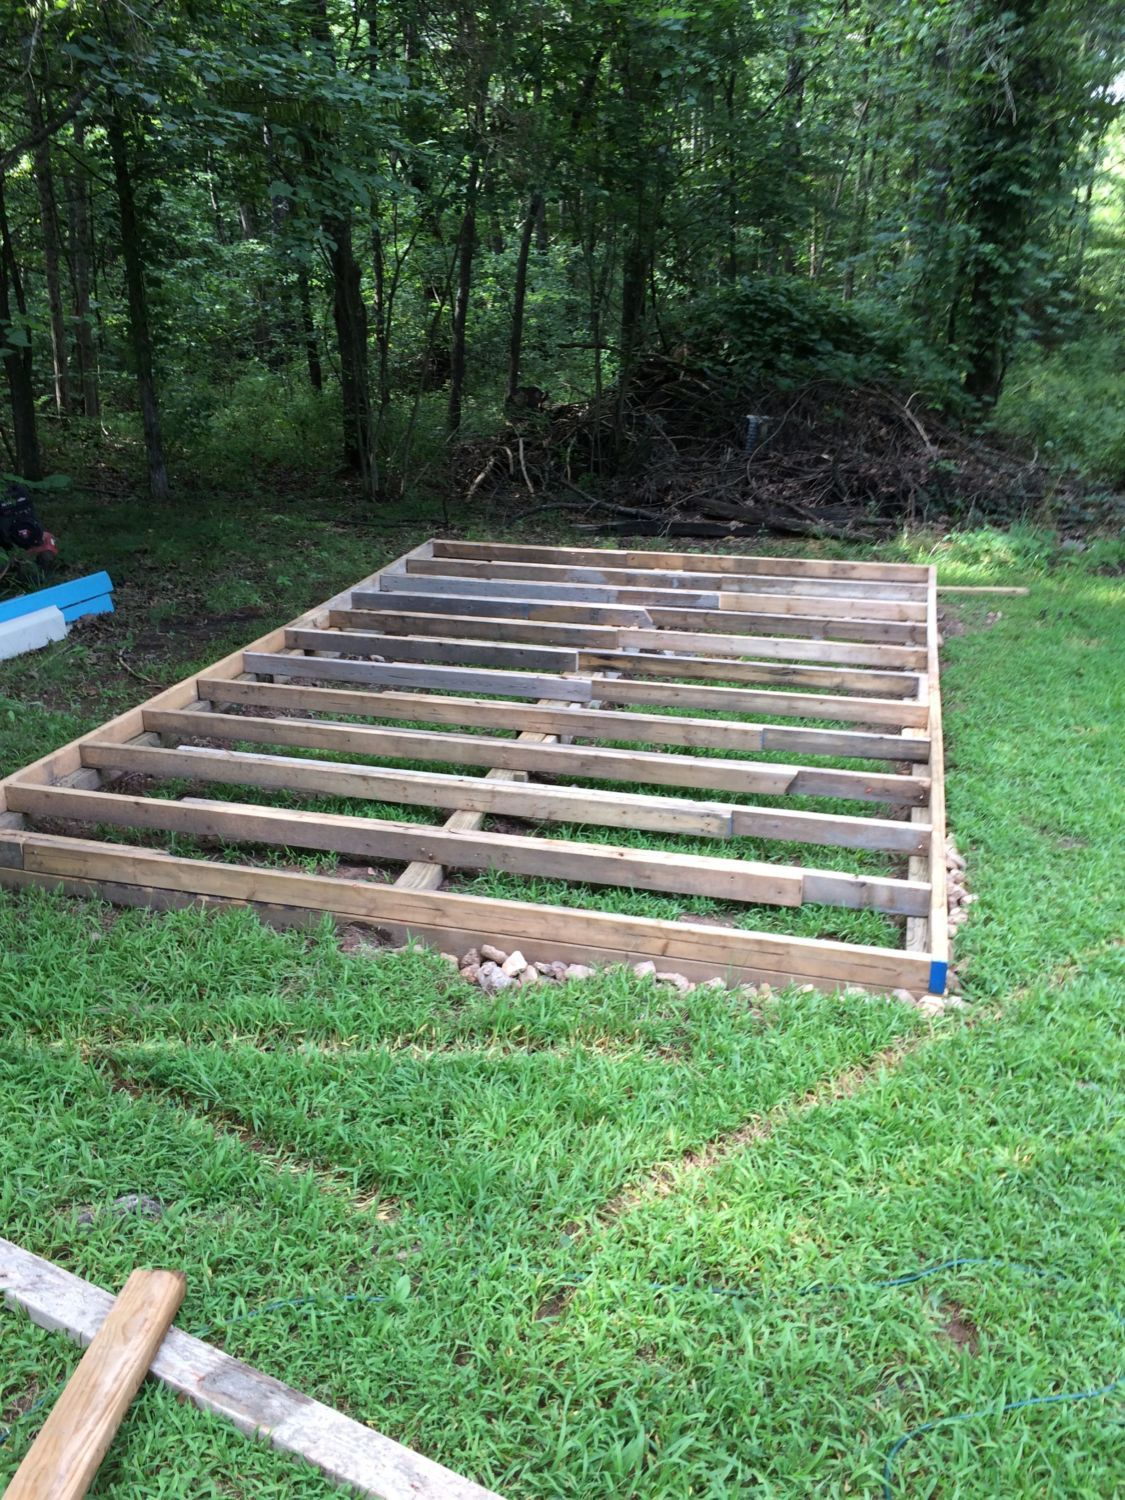 "Used 2x4's for the rim and floor joists. Spaced out the joists 16"" on center."